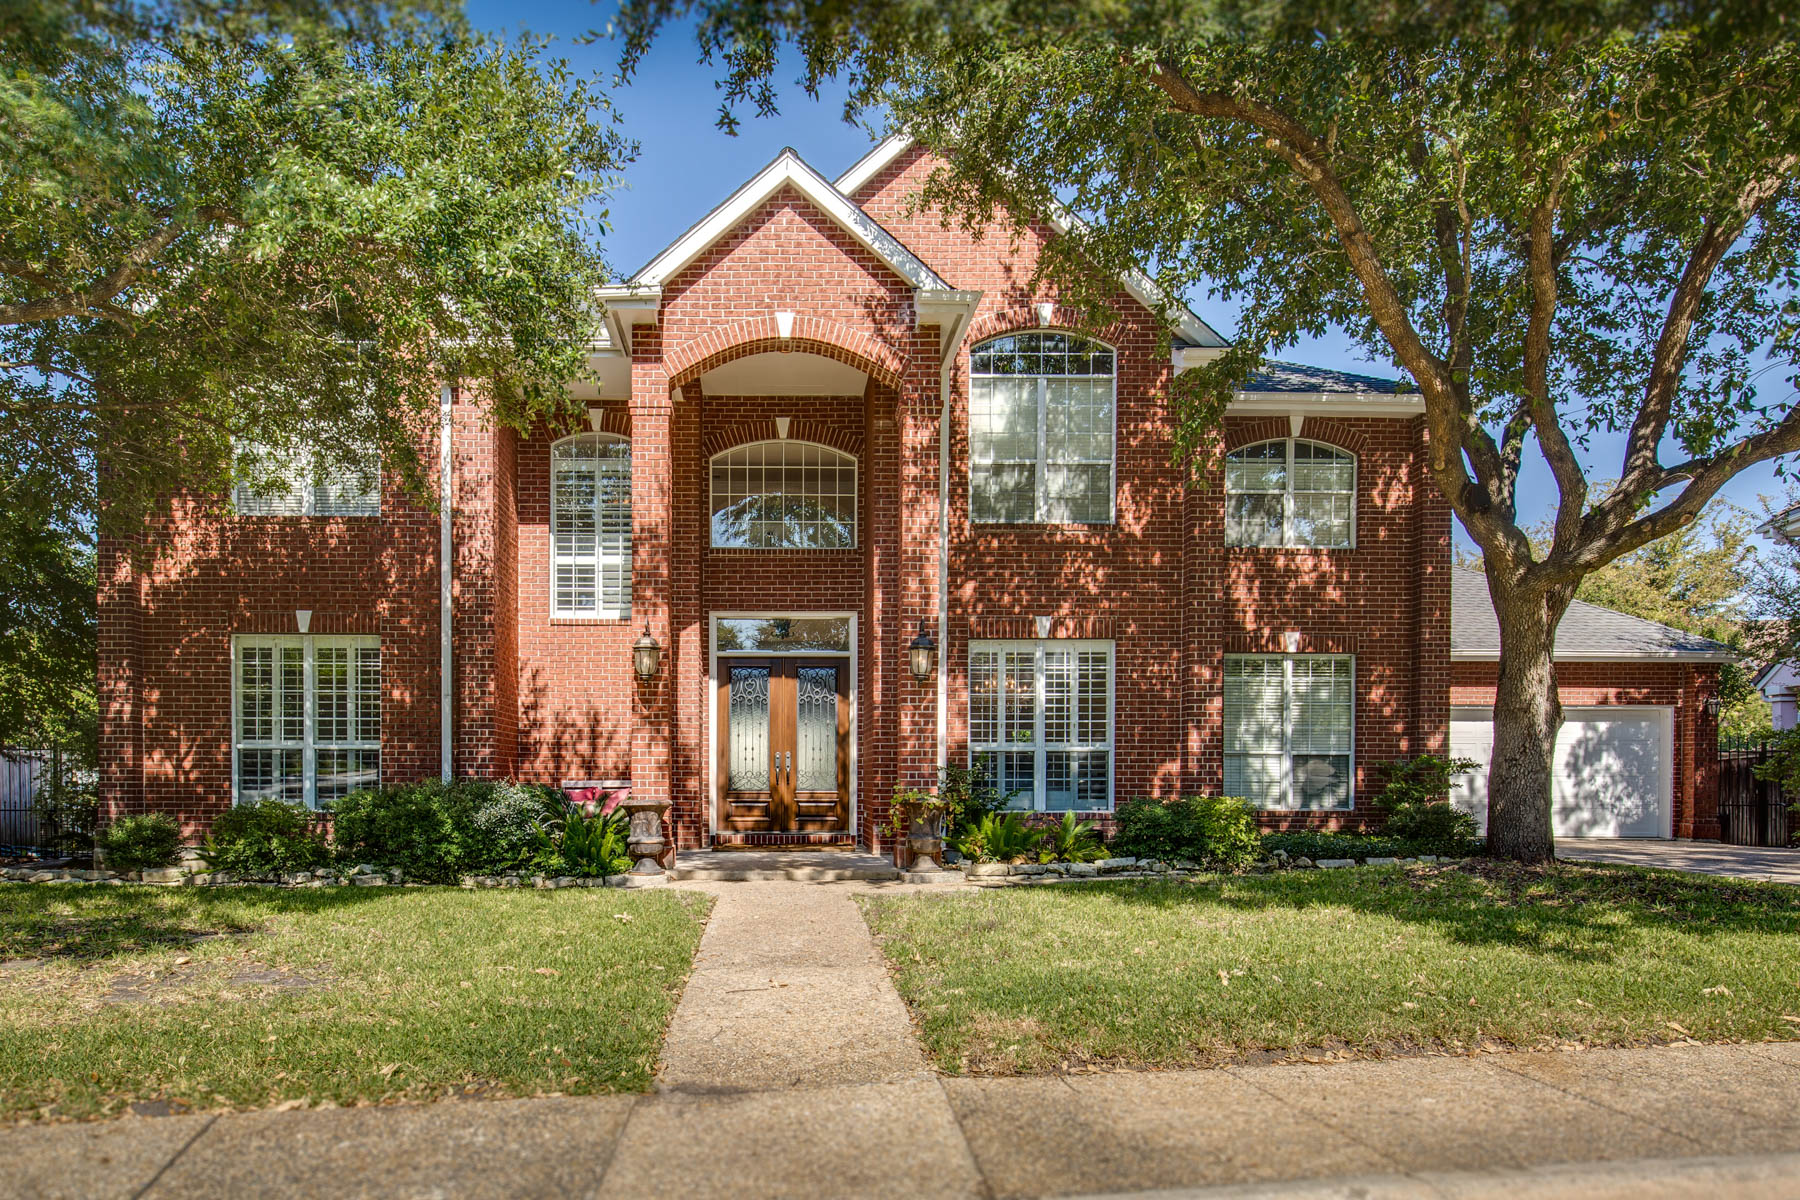 Property For Sale at Spacious Home in Alamo Heights ISD